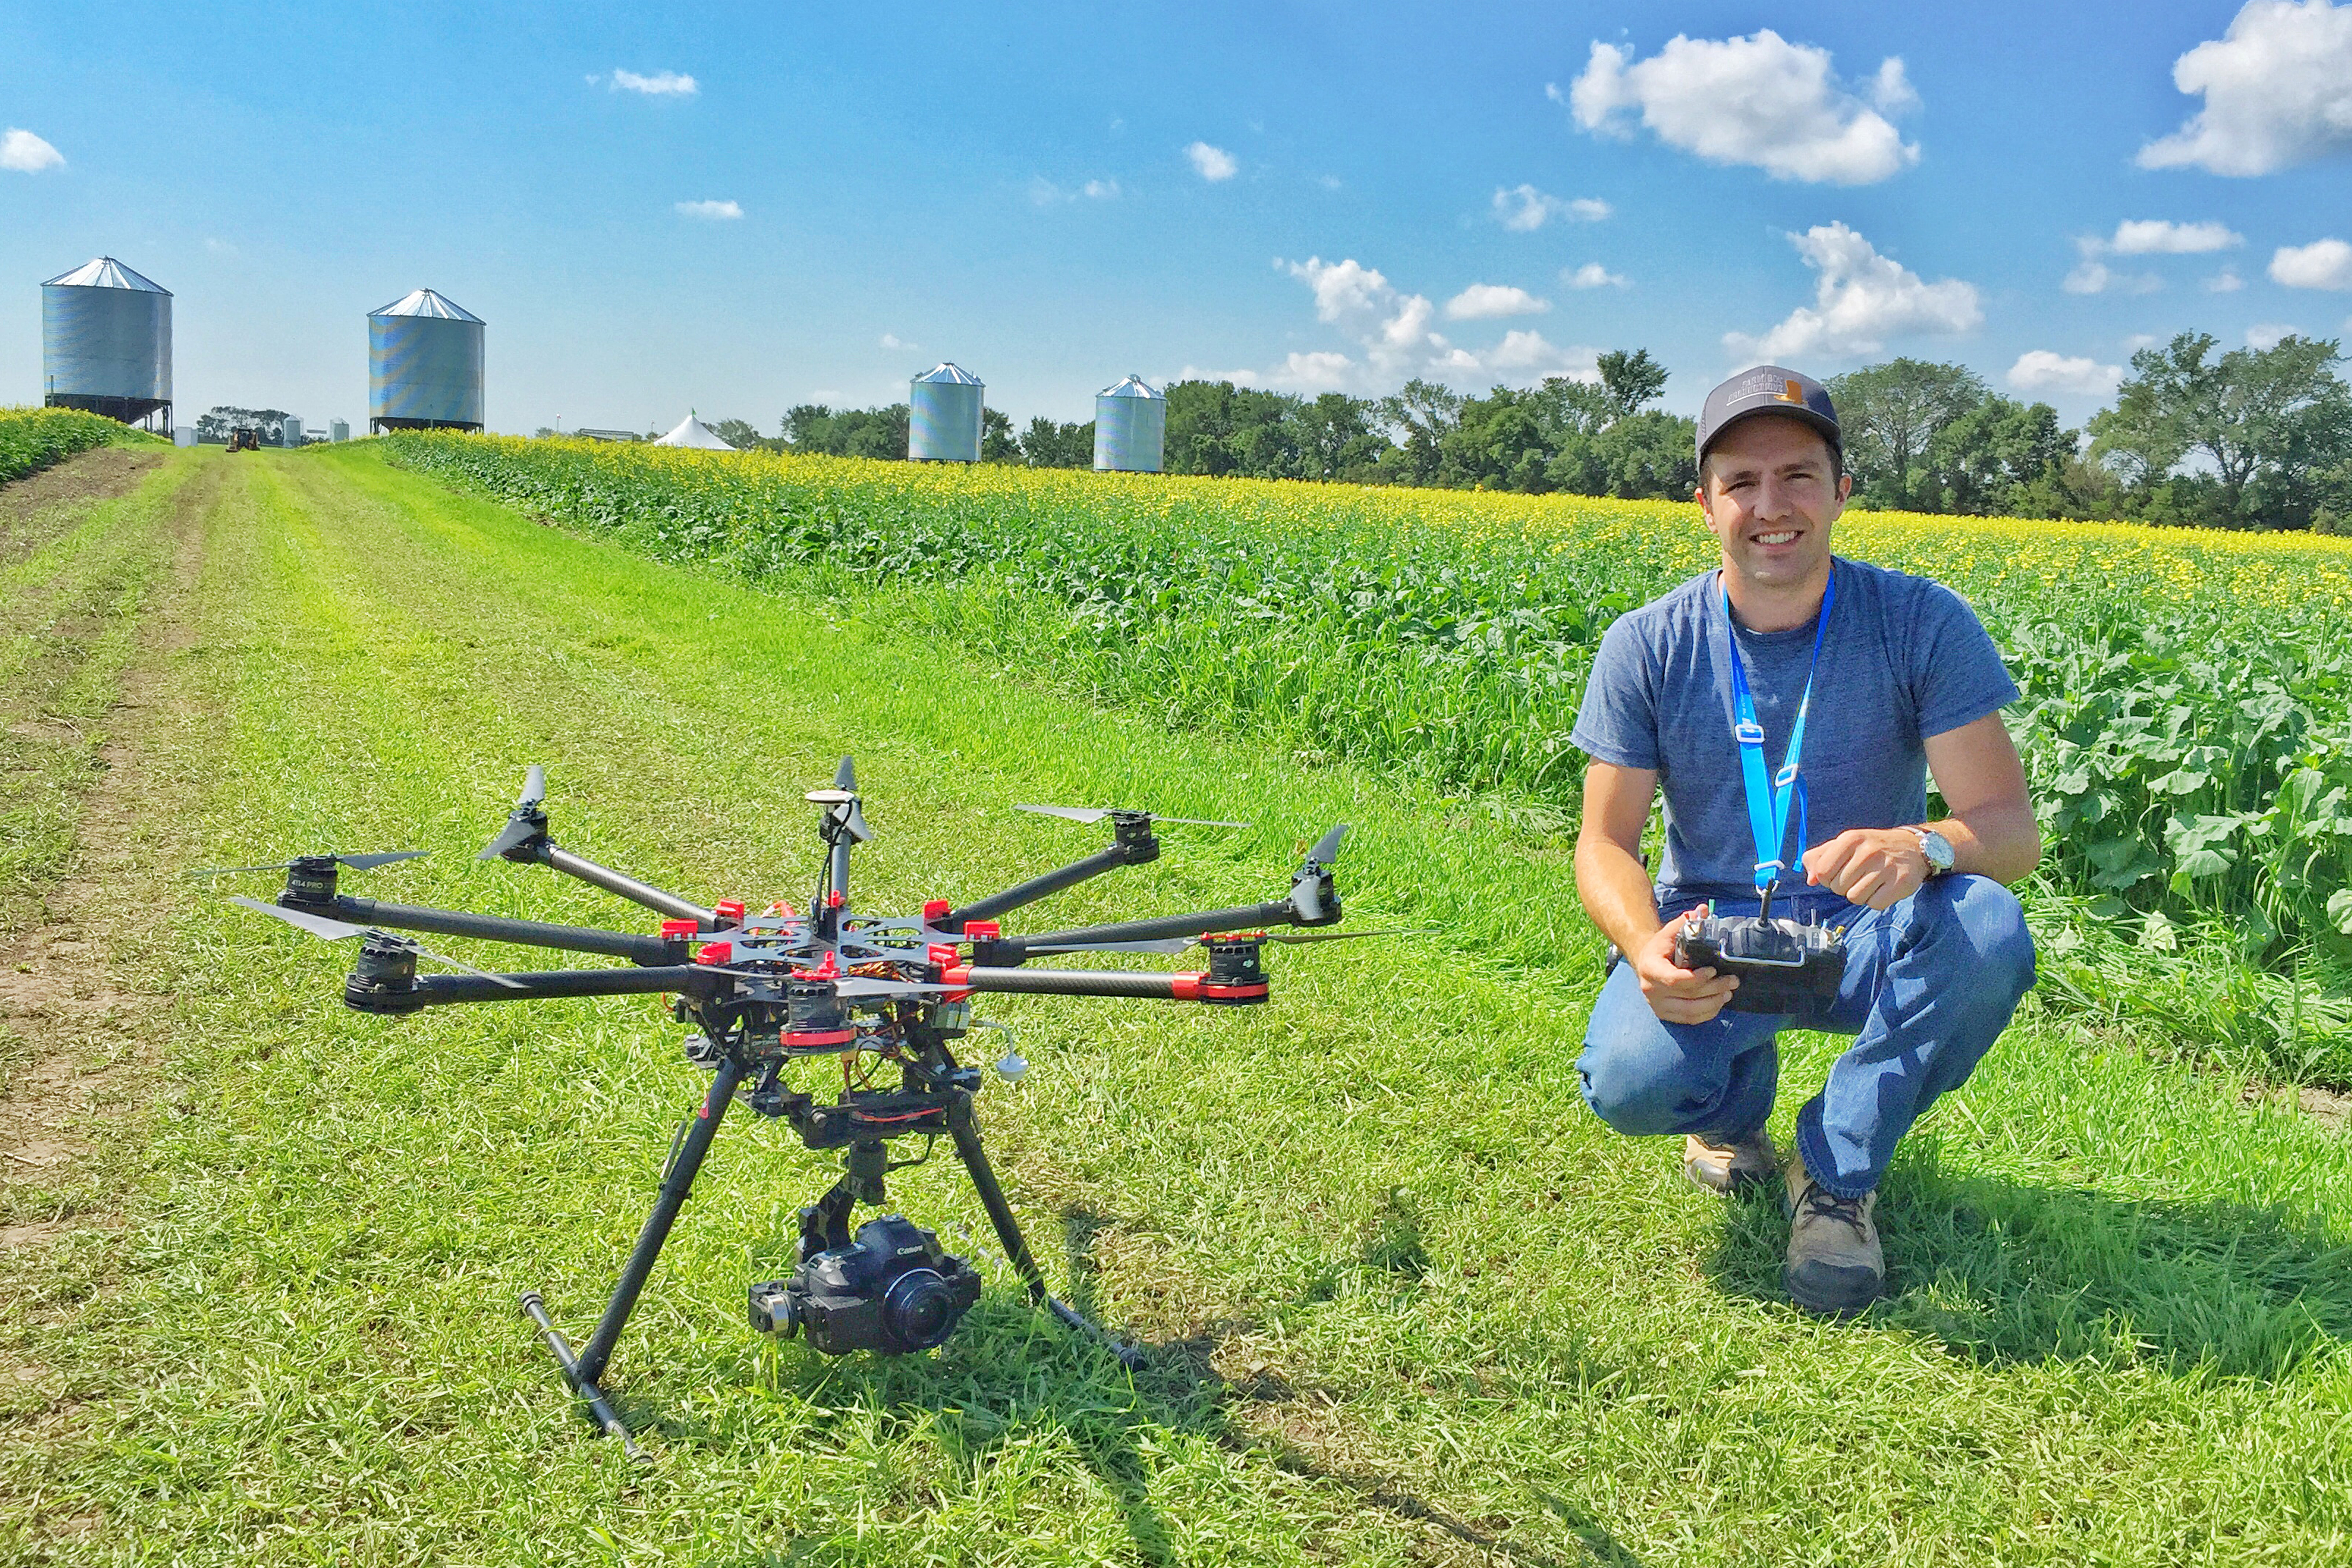 Live on location drone photo with operator Bruce Sargent